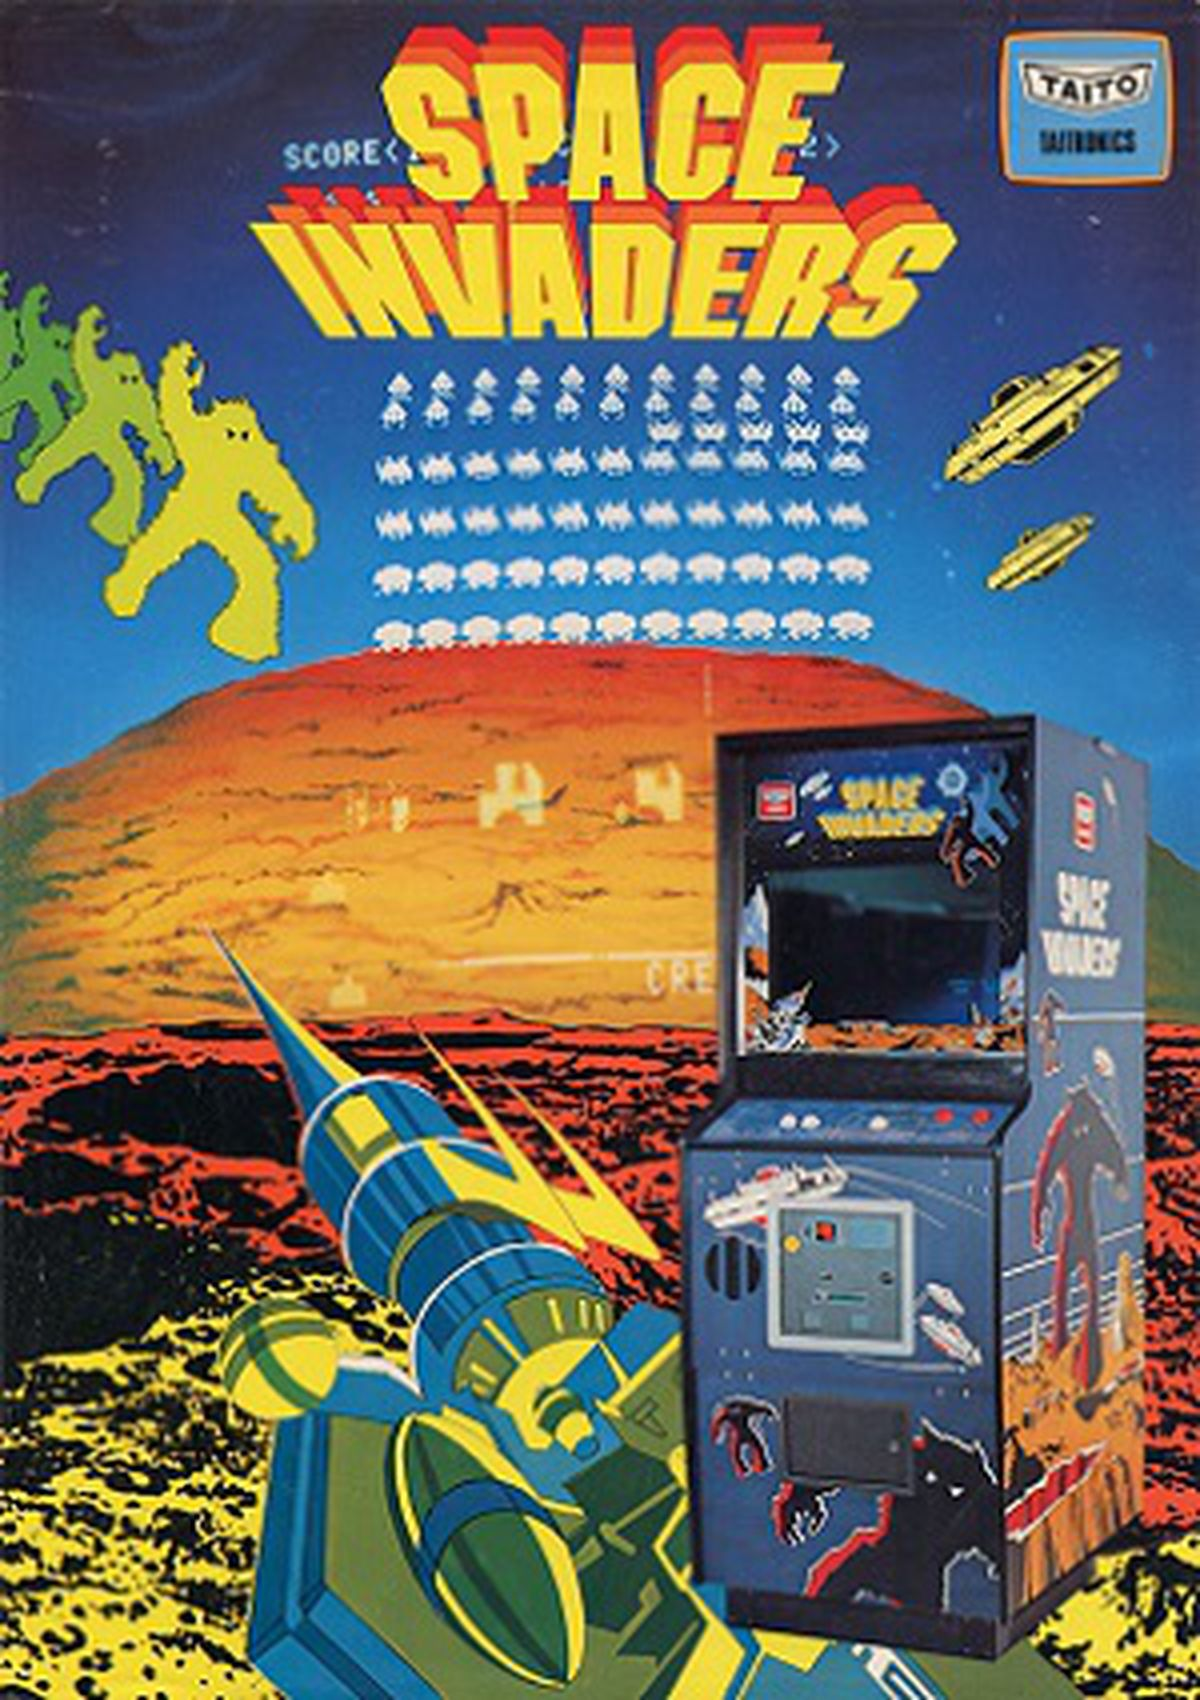 Cigarettes, Space Invaders and the birth of the game watch